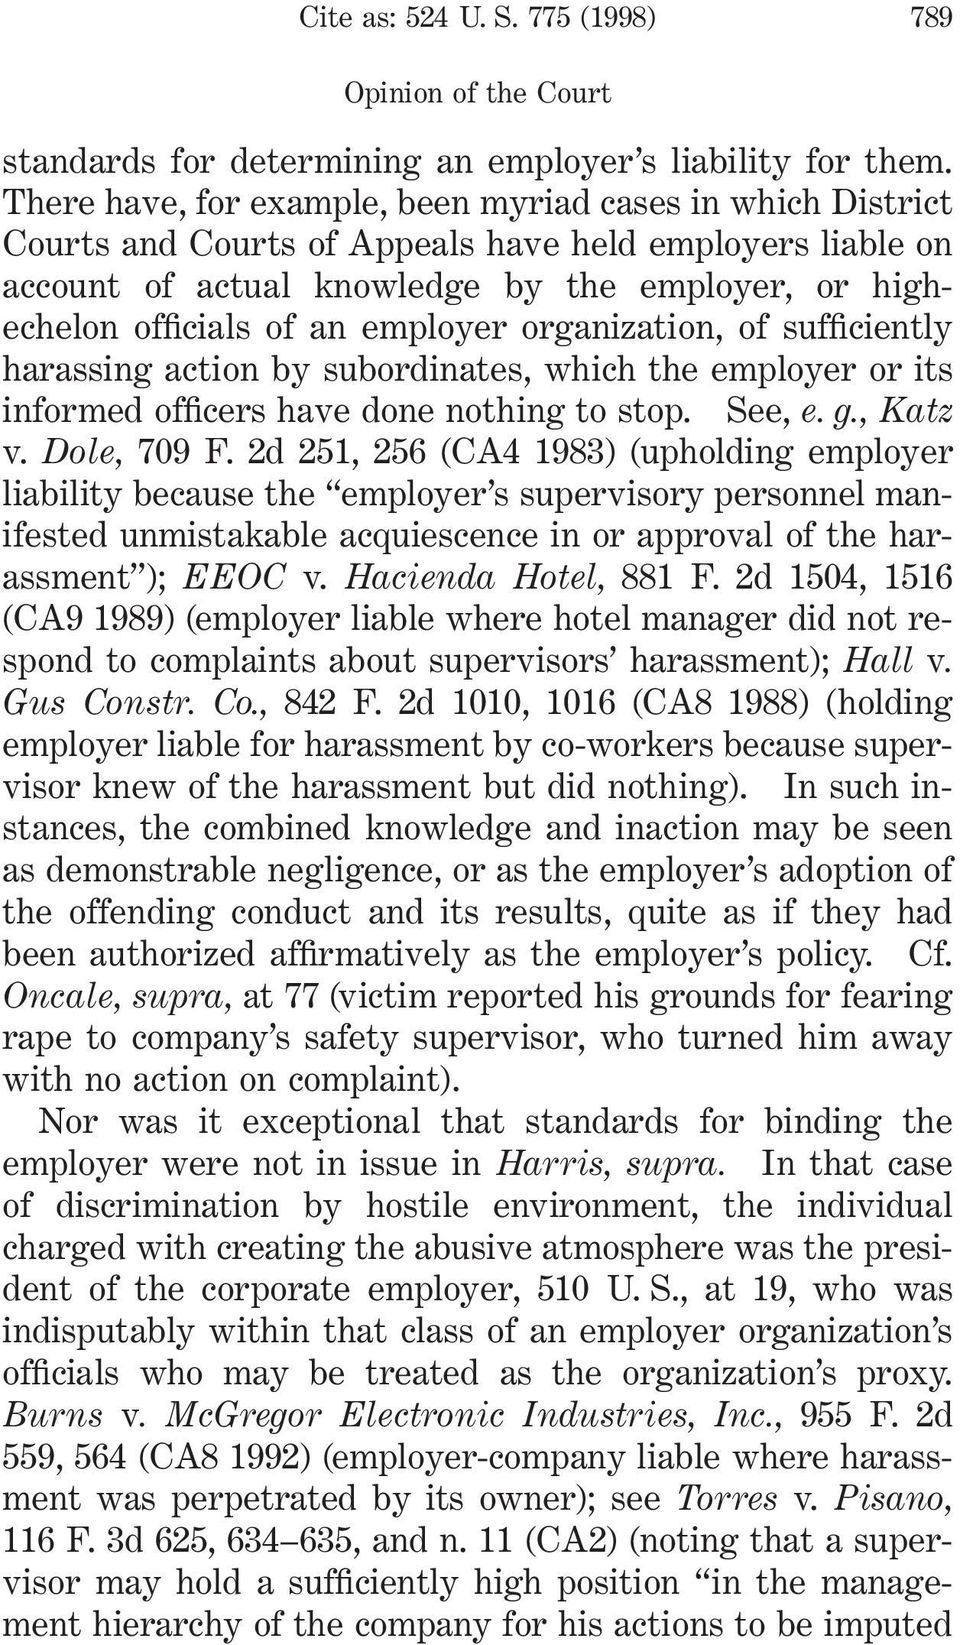 employer organization, of sufficiently harassing action by subordinates, which the employer or its informed officers have done nothing to stop. See, e. g., Katz v. Dole, 709 F.